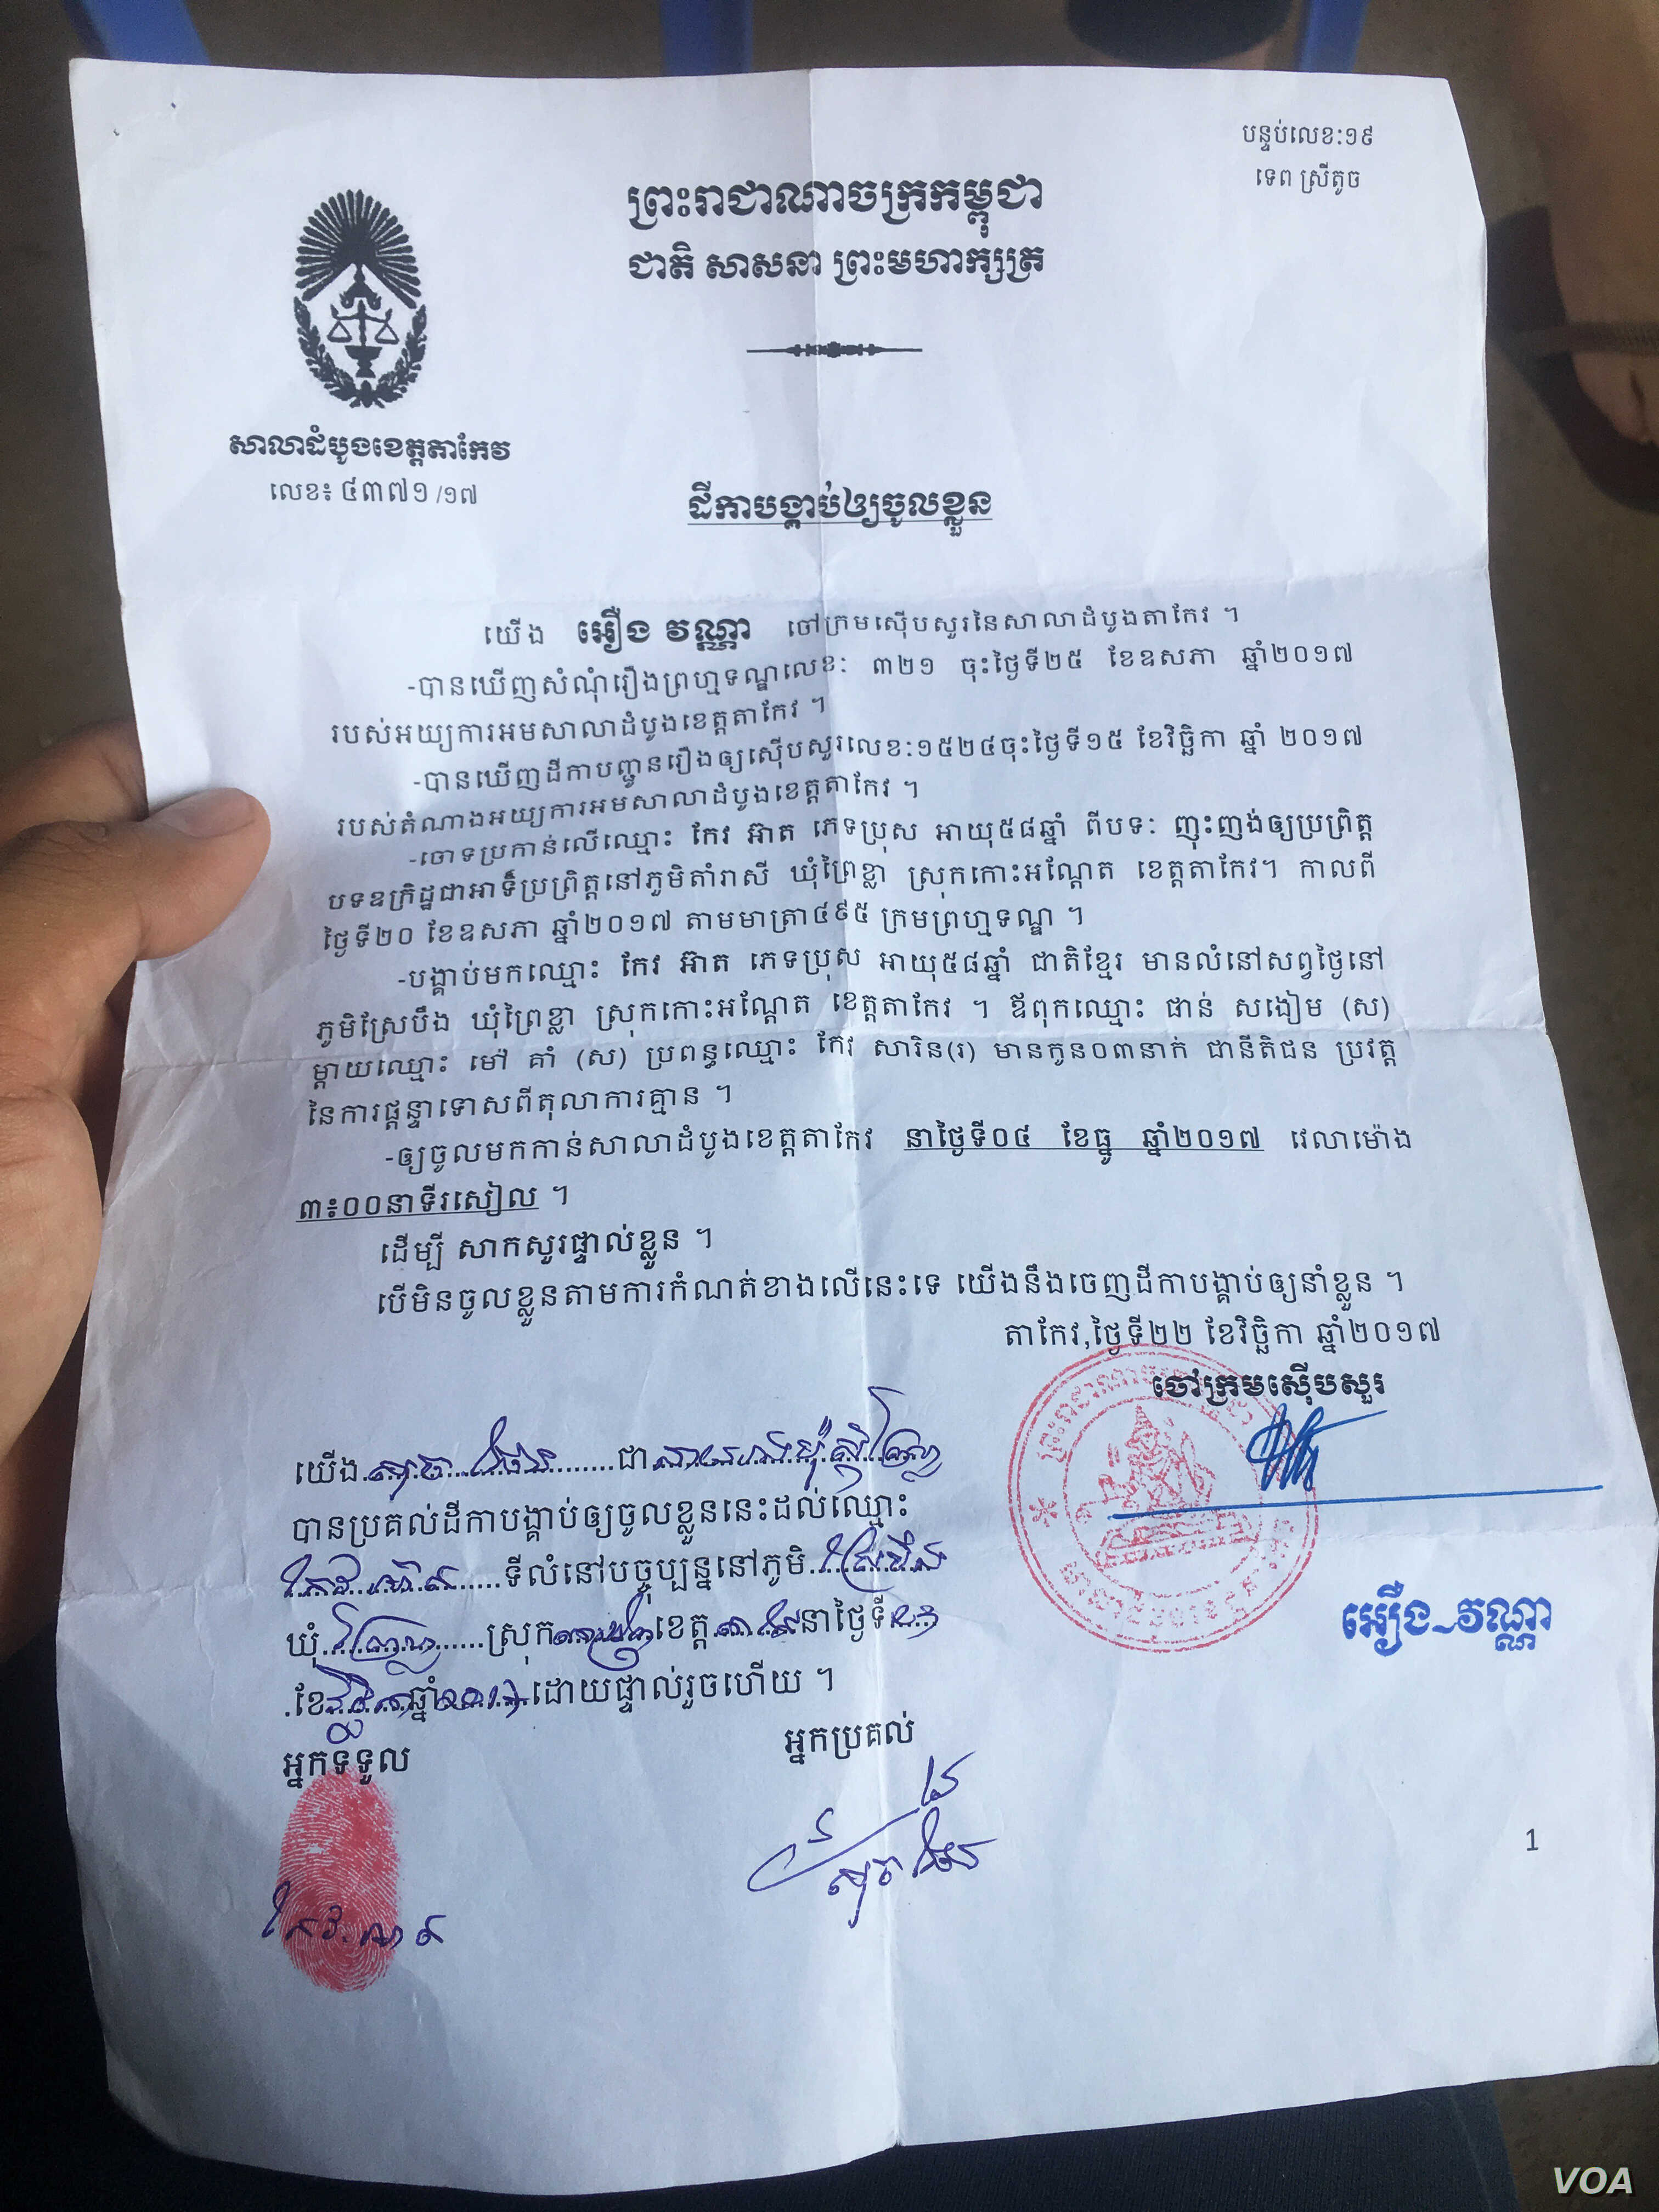 A summons dated November 22, 2017 orders opposition commune councilor Keo Eat to appear at the Takeo Provincial Court on December 4 on charges of felony incitement, Nov. 27, 2017.